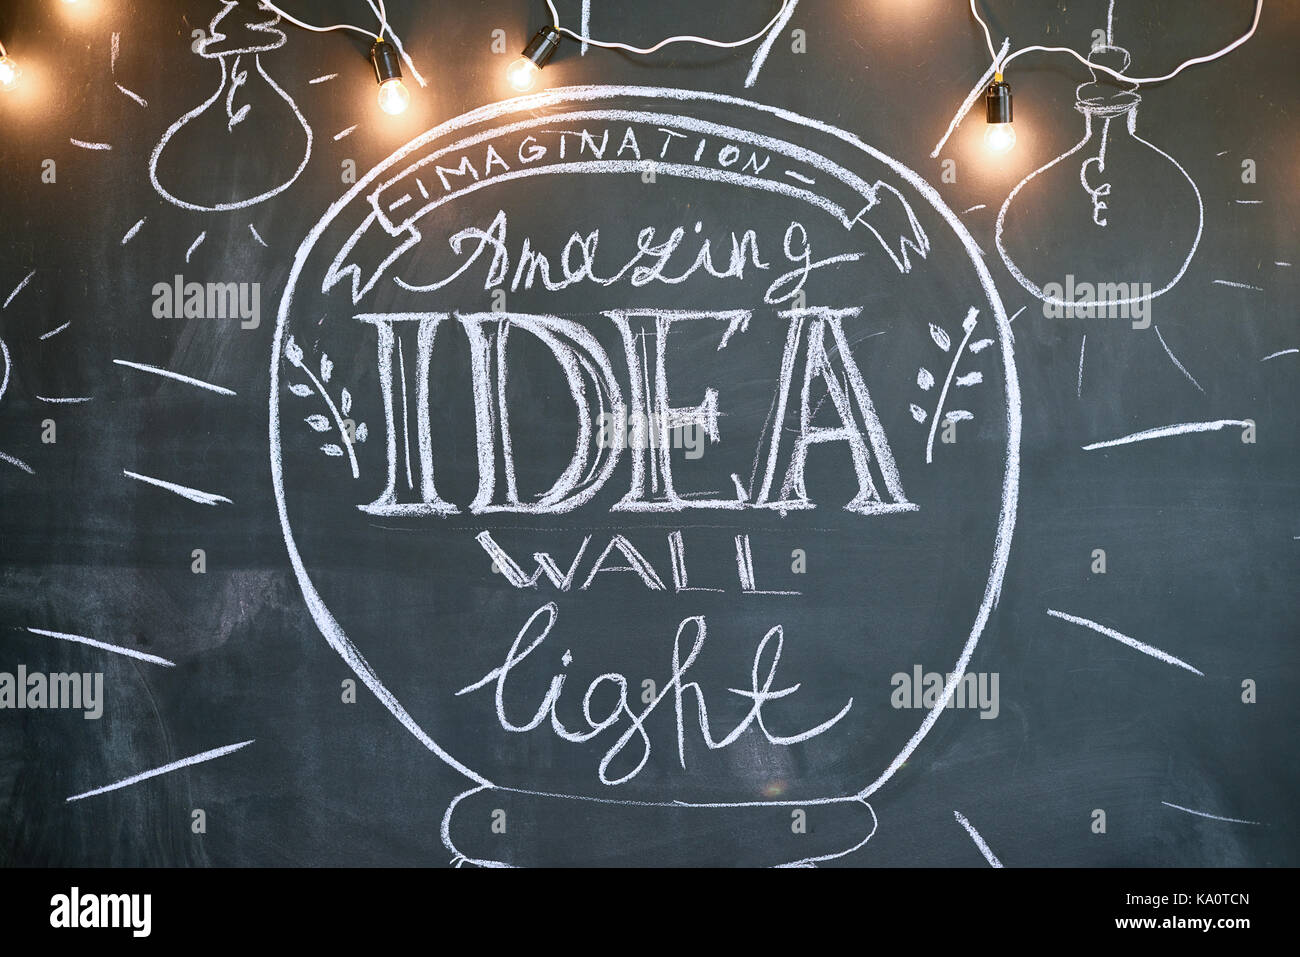 Background image of inspirational chalk drawing on wall in modern apartment, copy space - Stock Image